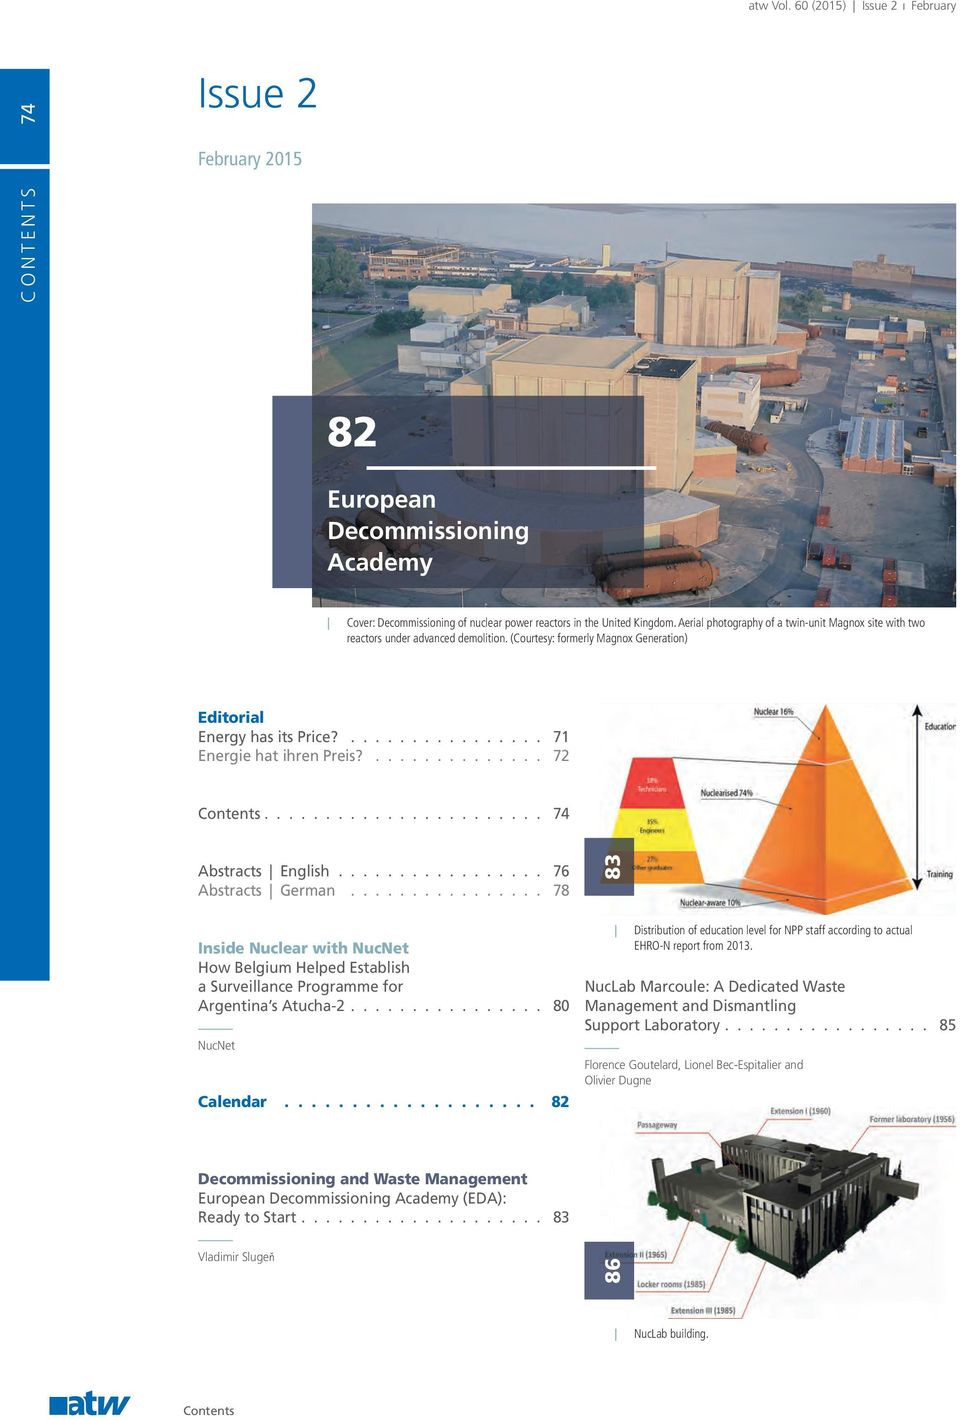 72 Contents 74 Abstracts English 76 Abstracts German 78 Inside Nuclear with NucNet How Belgium Helped Establish a Surveillance Programme for Argentina s Atucha-2 80 NucNet Calendar 82 Decommissioning